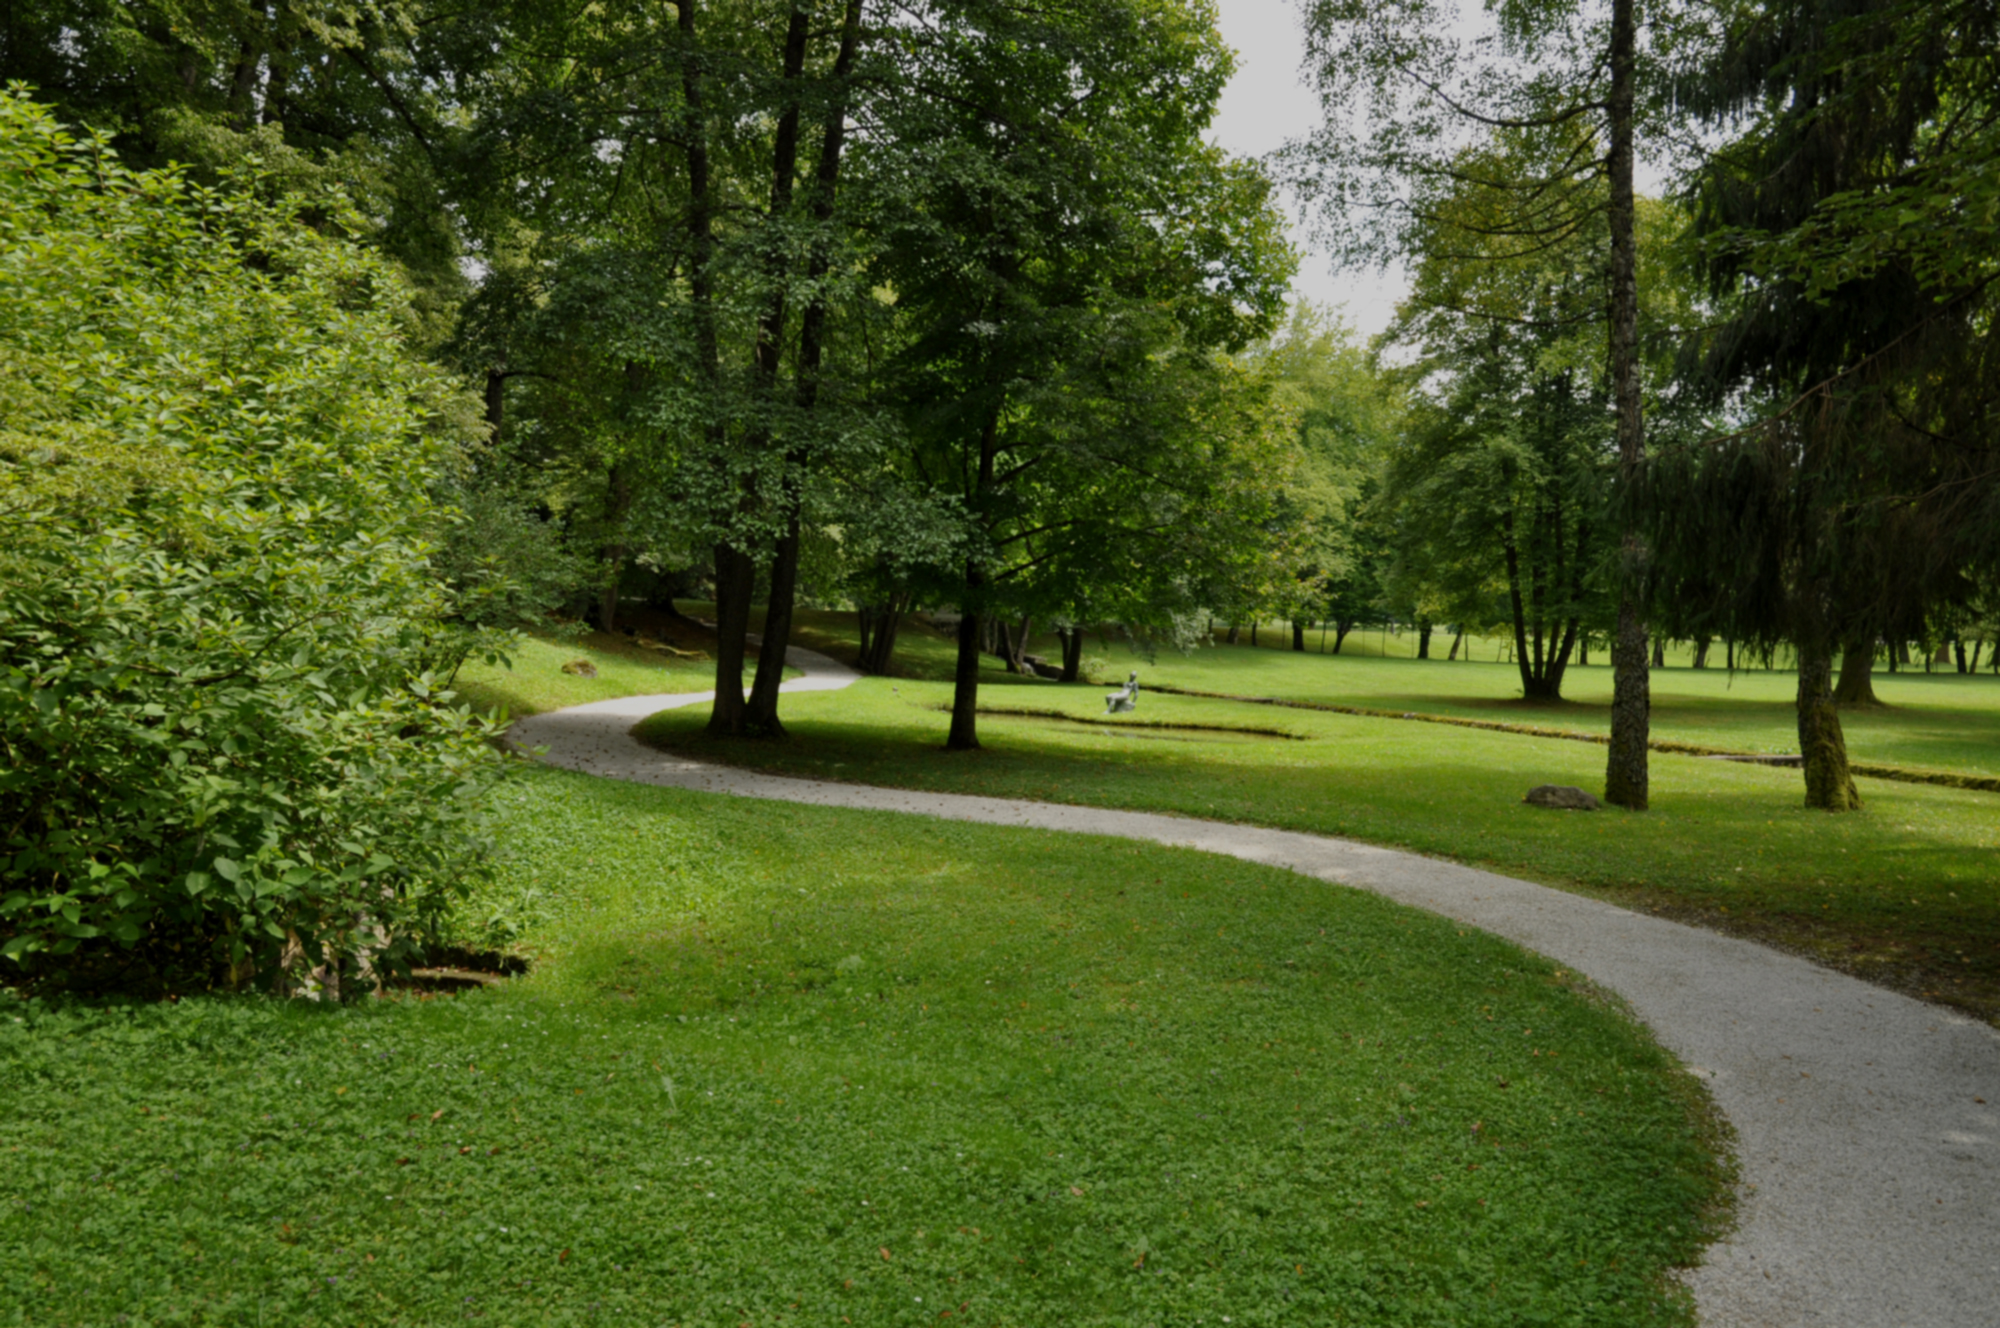 A winding footpath goes through a park that is filled with green trees and green grass